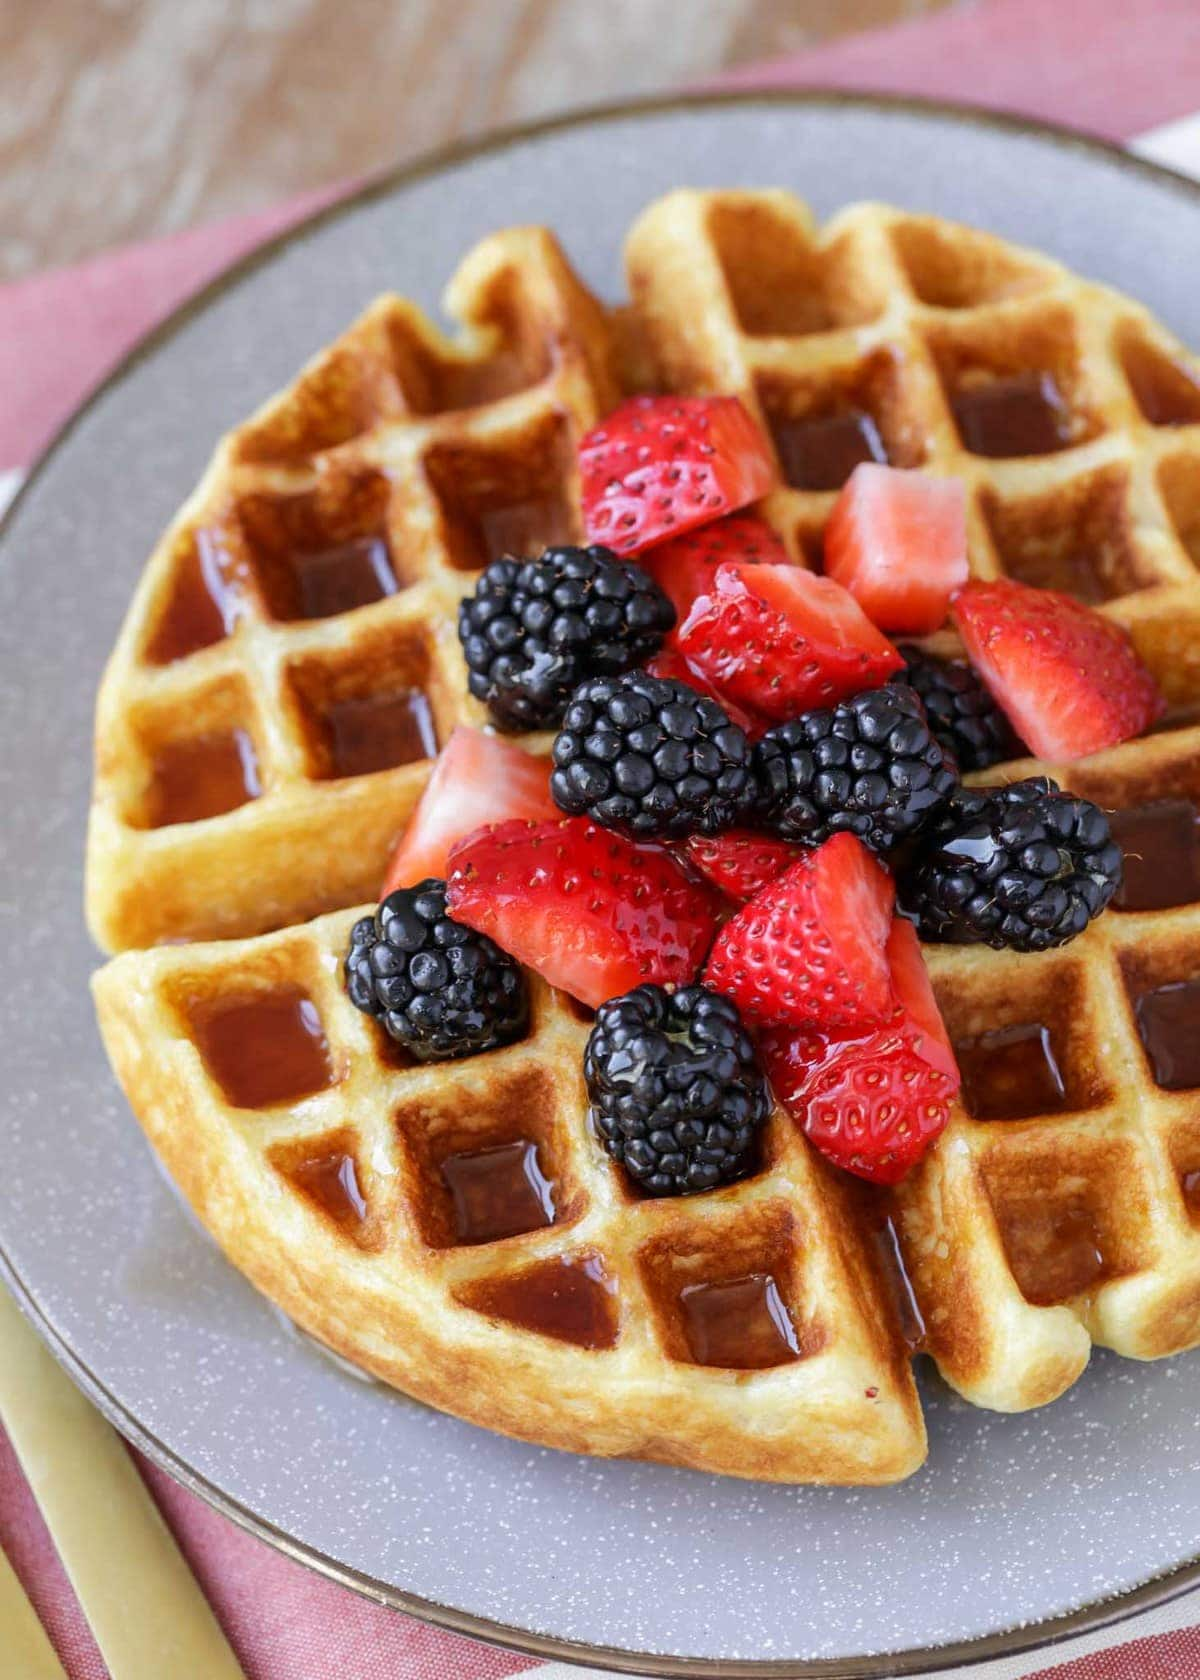 Belgian waffles recipe topped with berries on gray plate